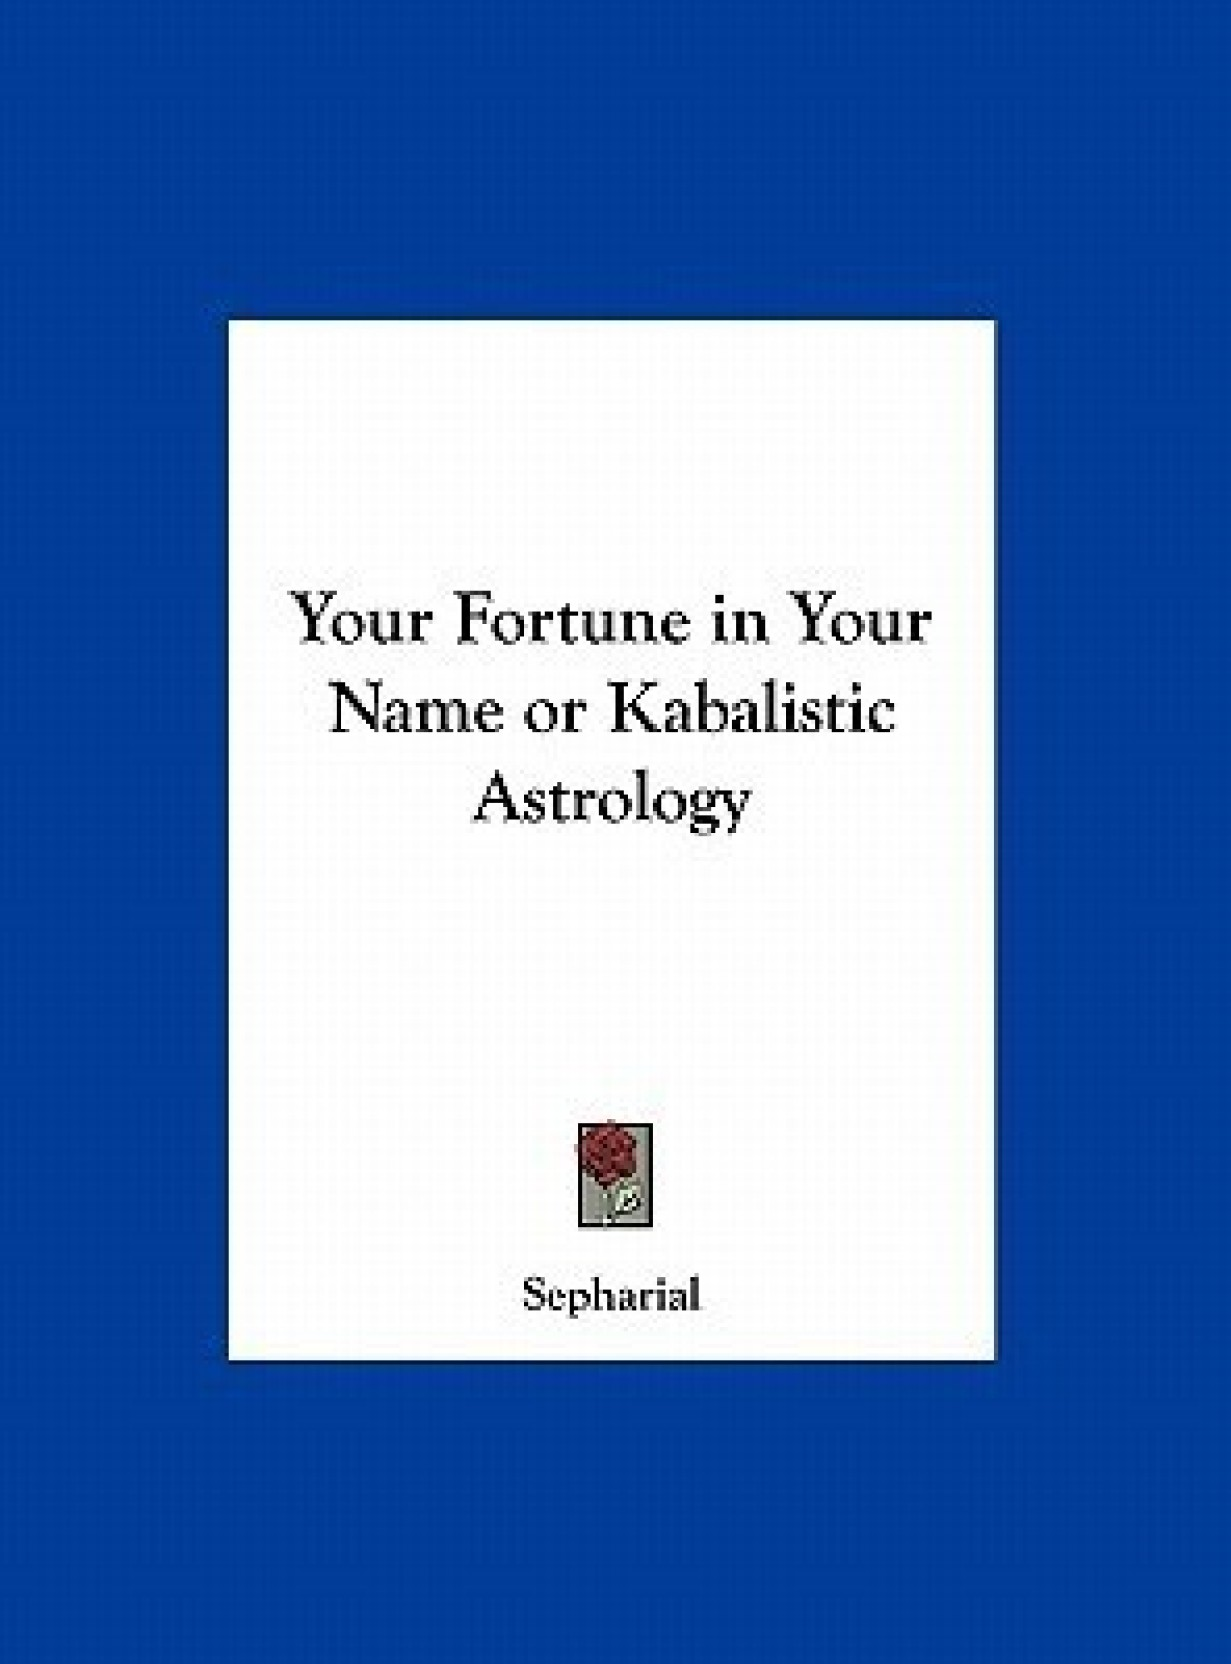 Your Fortune in Your Name or Kabalistic Astrology: Buy Your